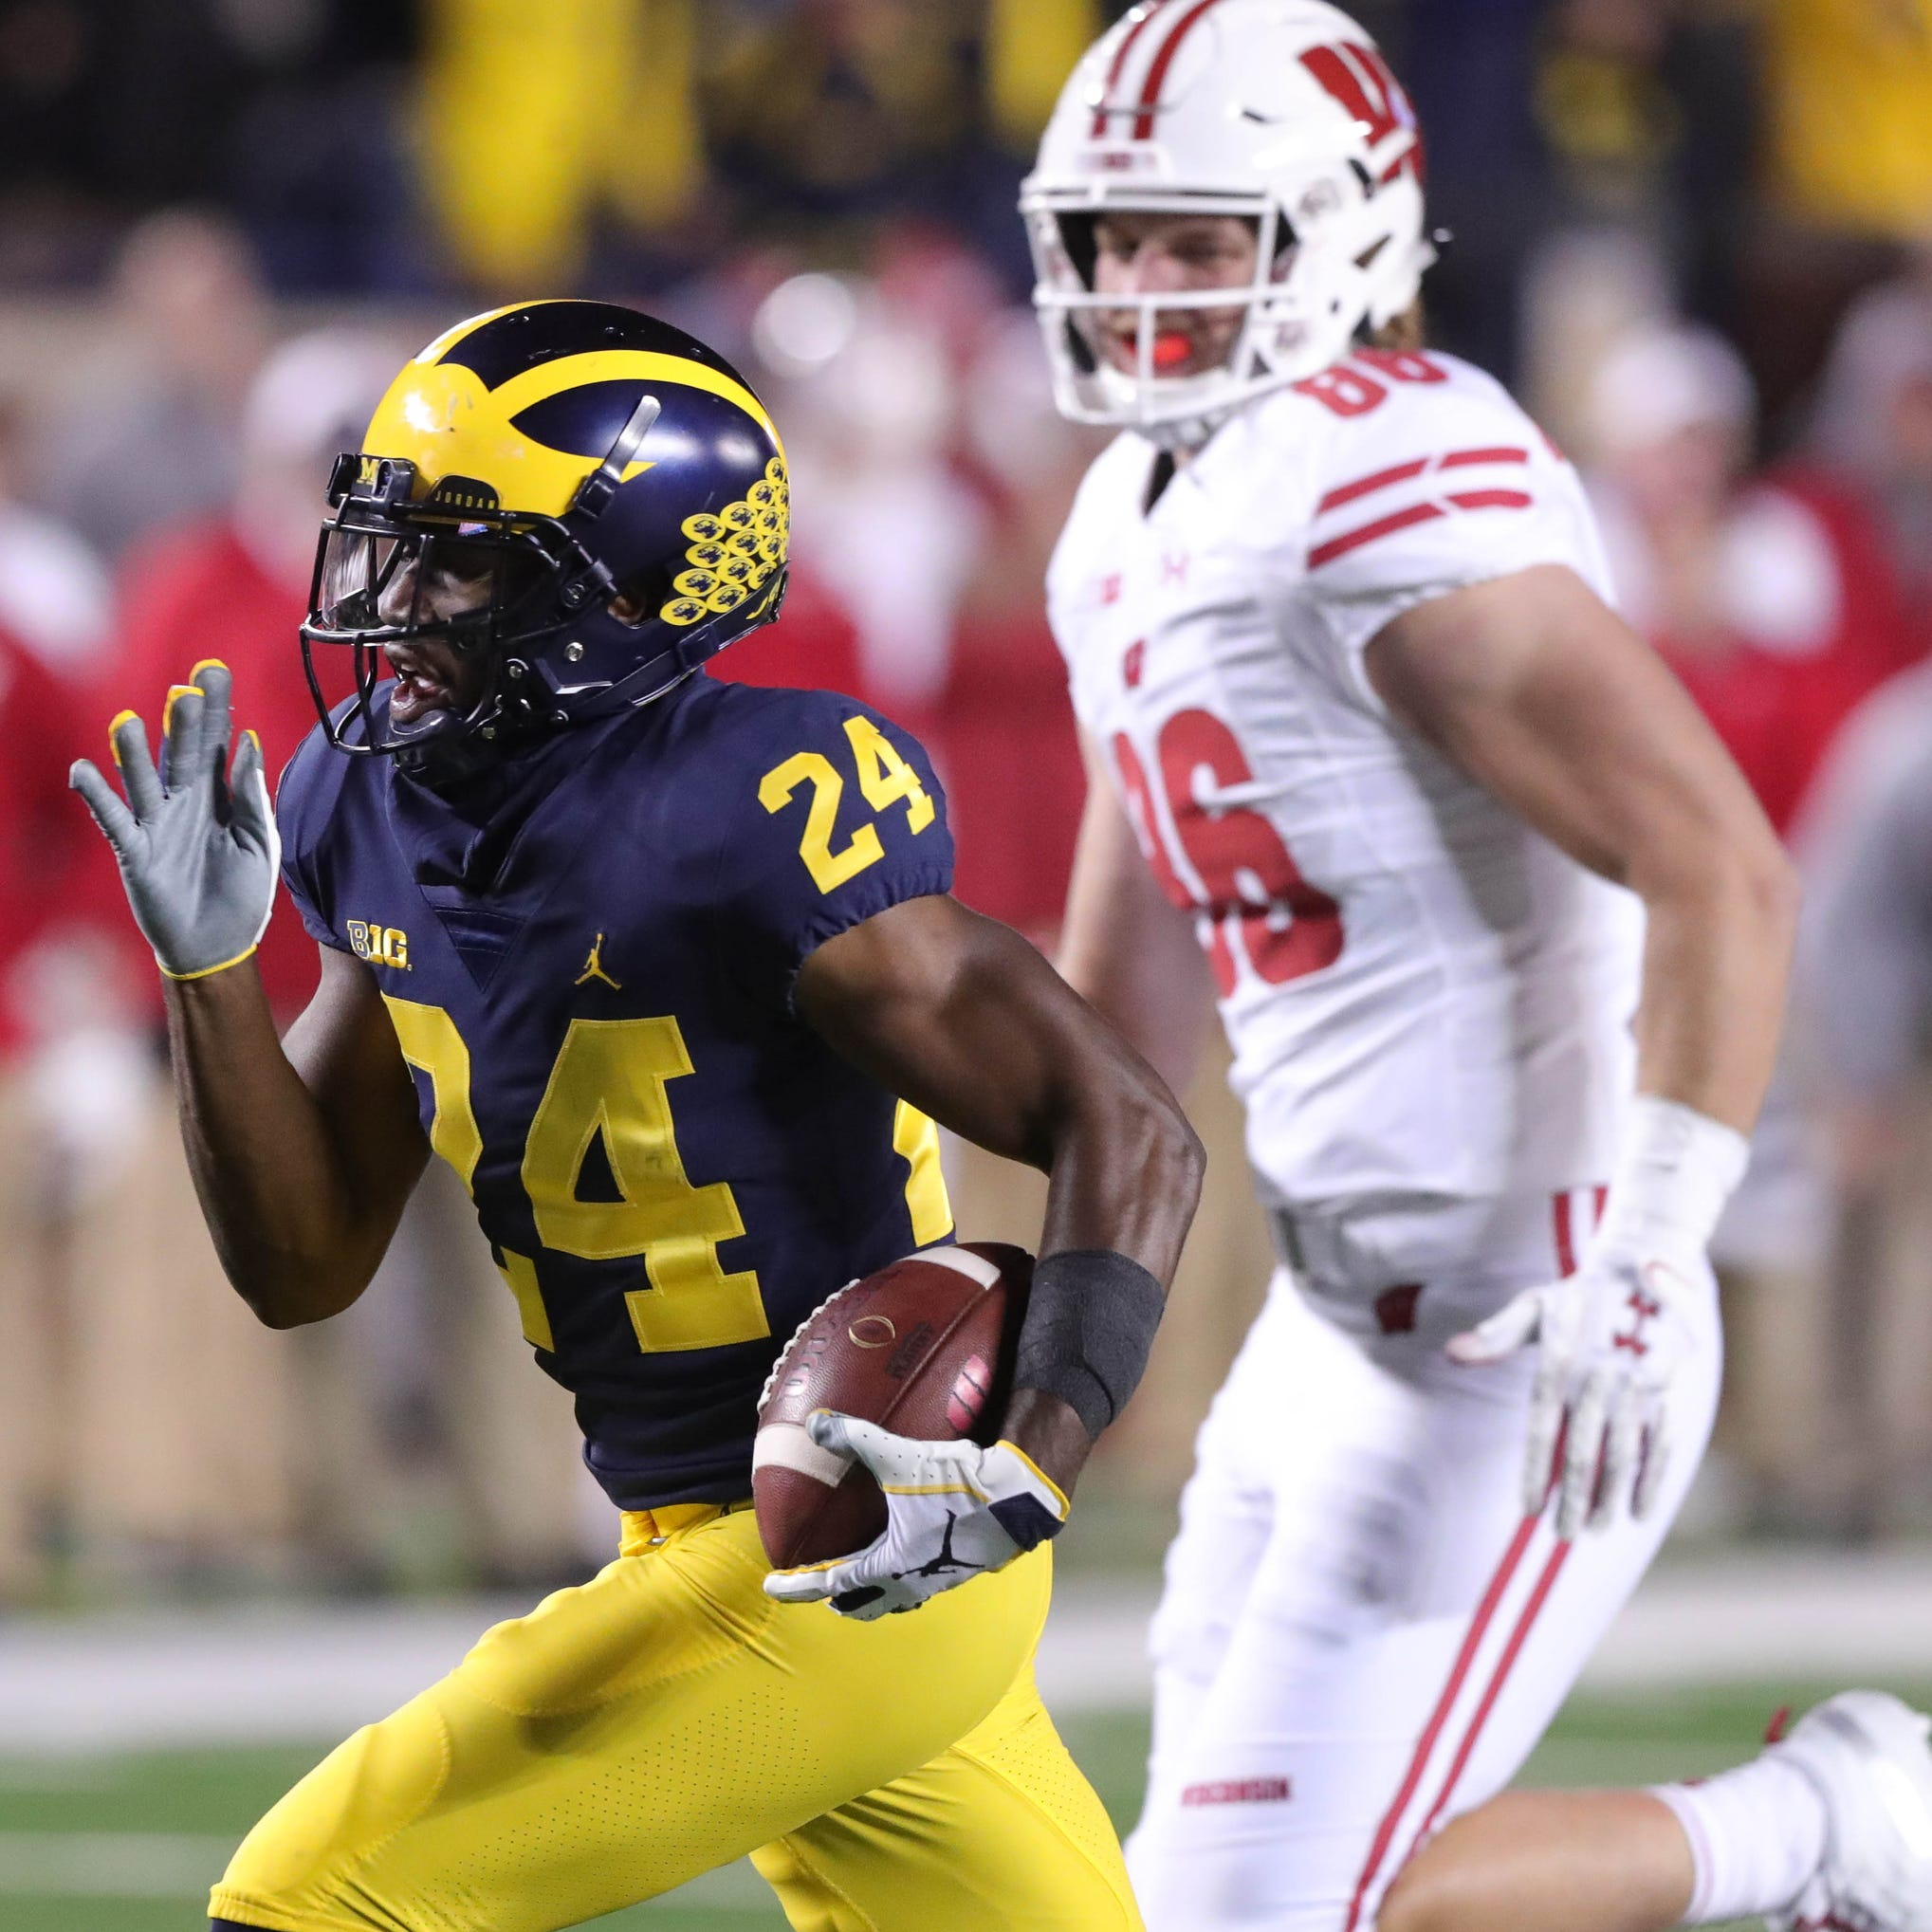 Michigan football's Lavert Hill is in concussion protocol